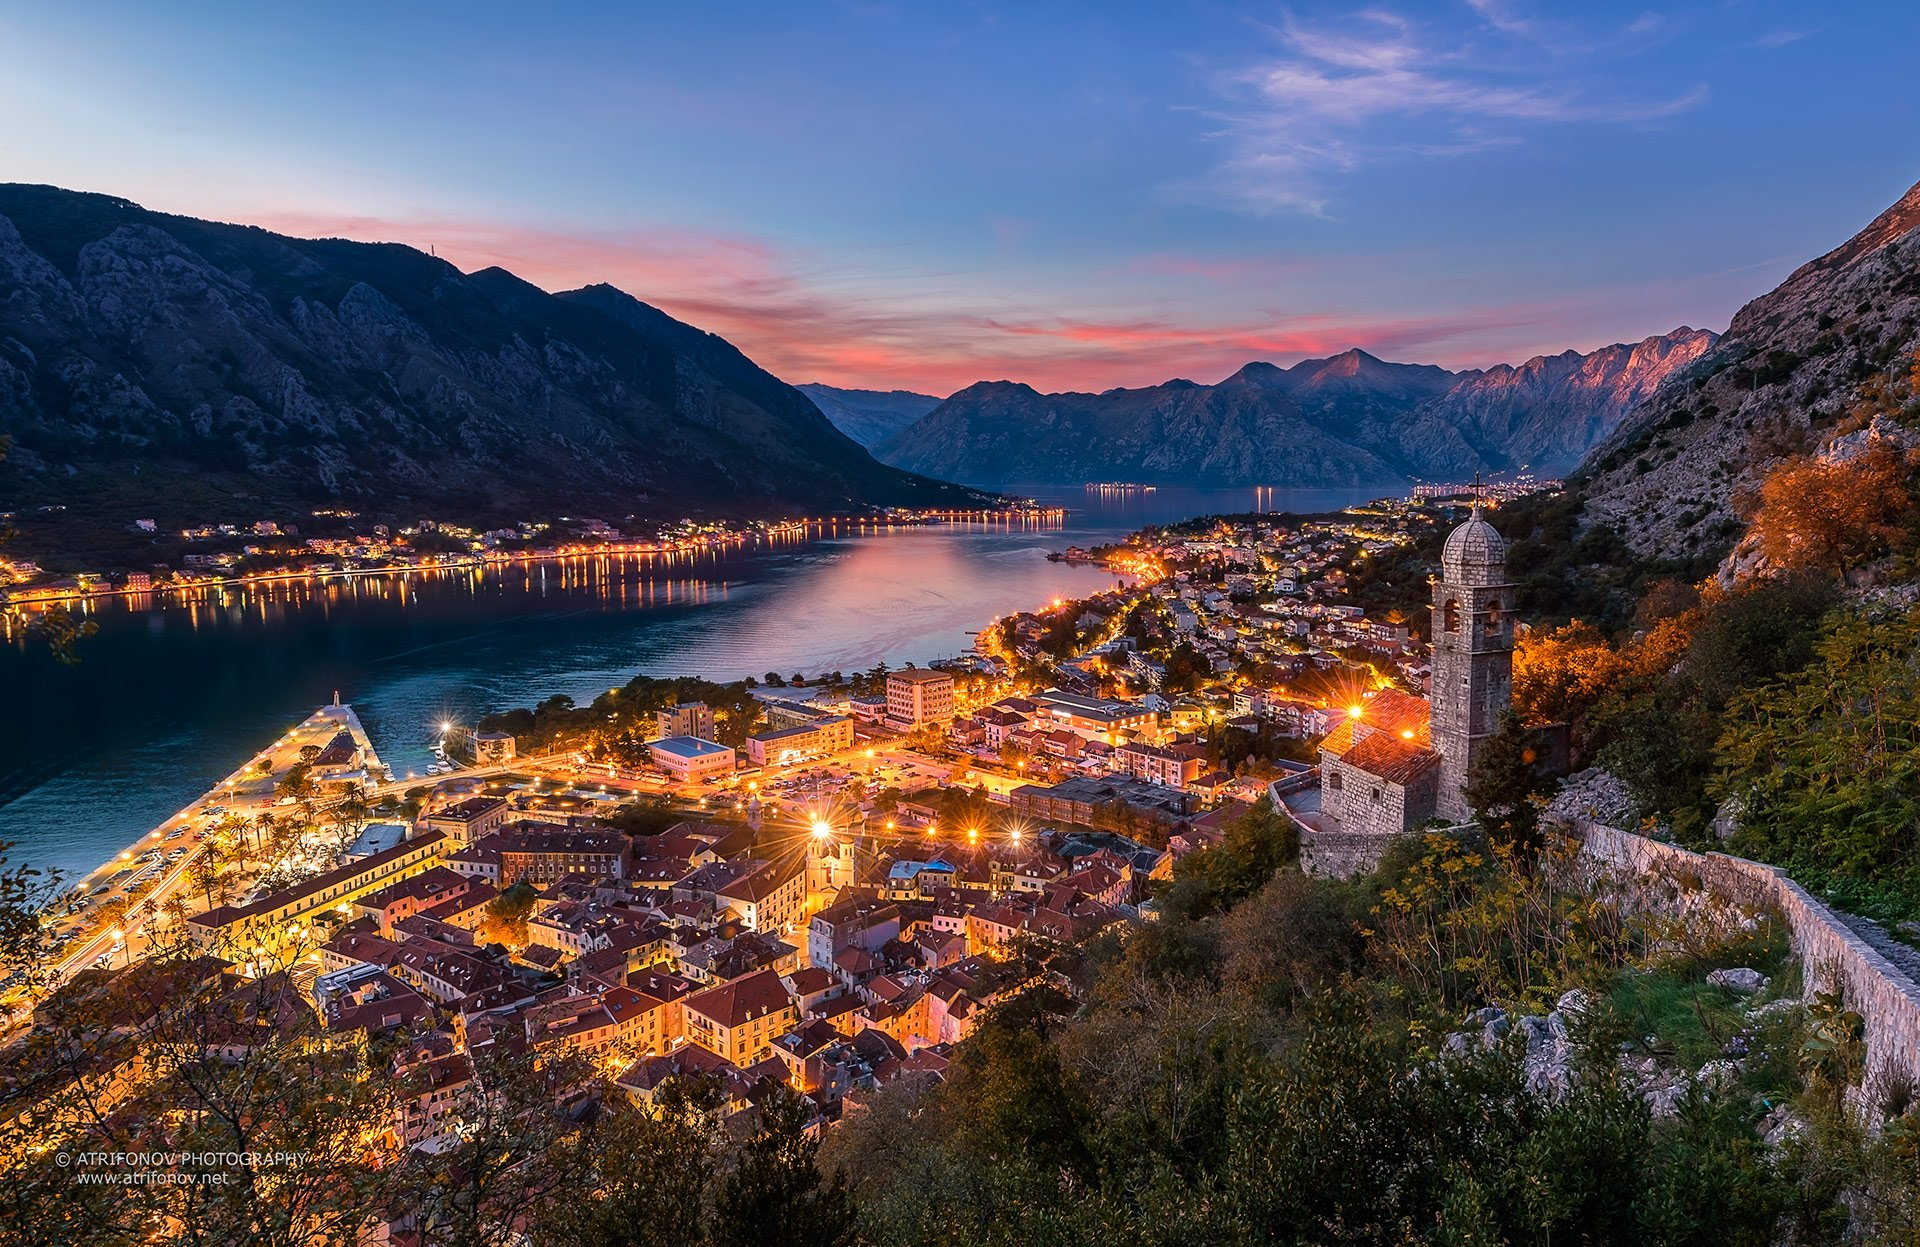 Kotor, Montenegro, Kotor bay, town, adriatic sea, lights, night, sunset, church, fortress, ancient, mountain, Andrey Trifonov